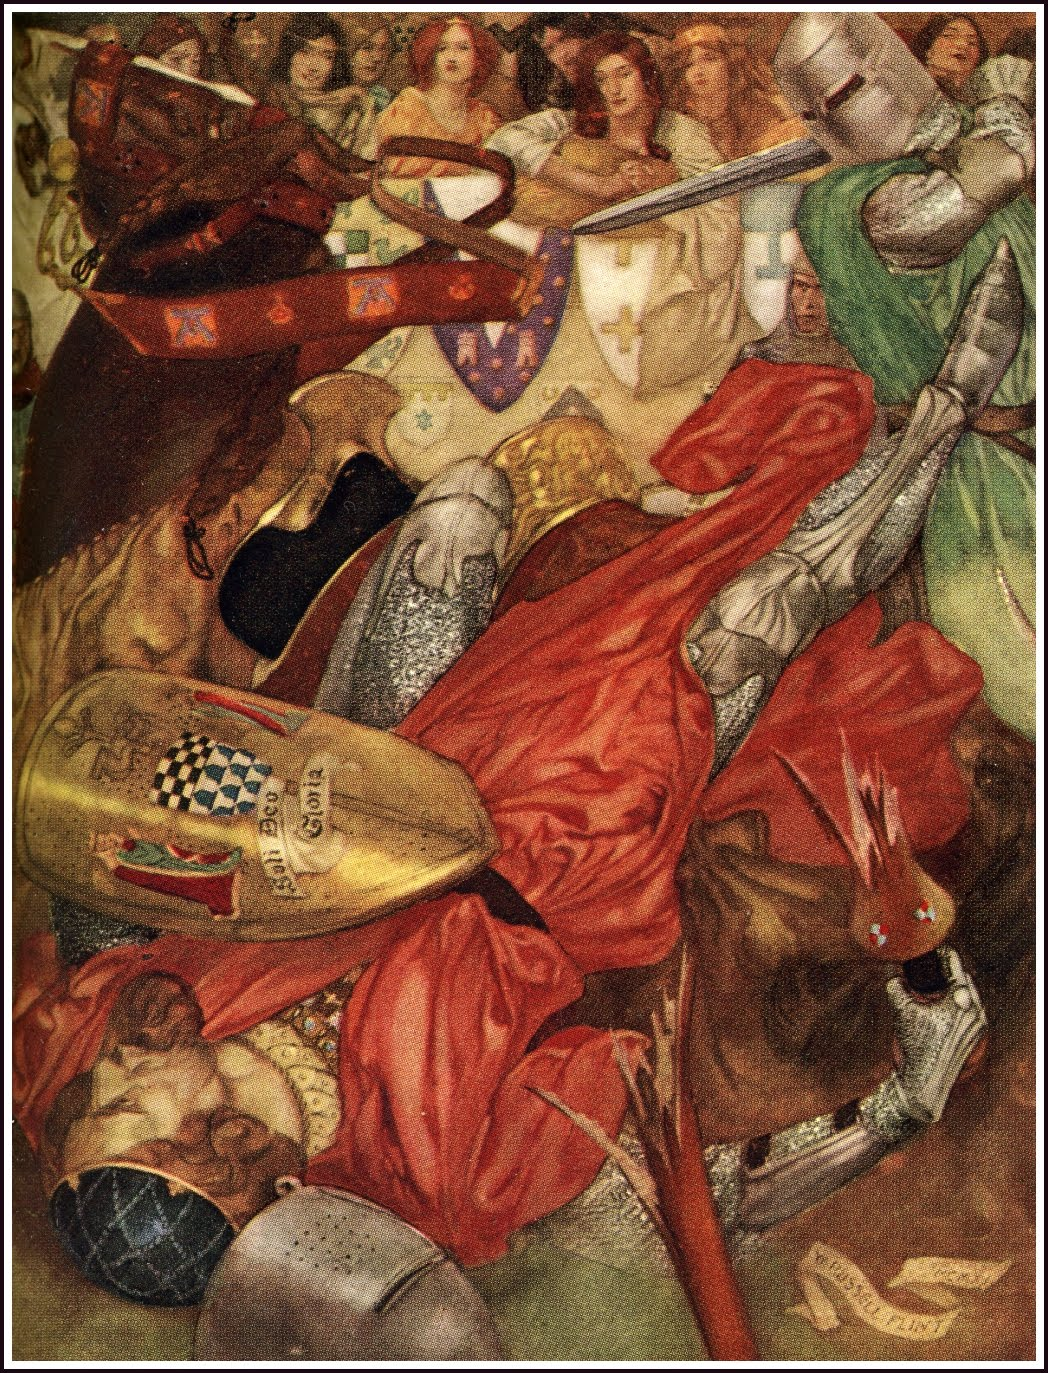 an analysis of the character king arthur by sir thomas malory and the comparison to beowulf